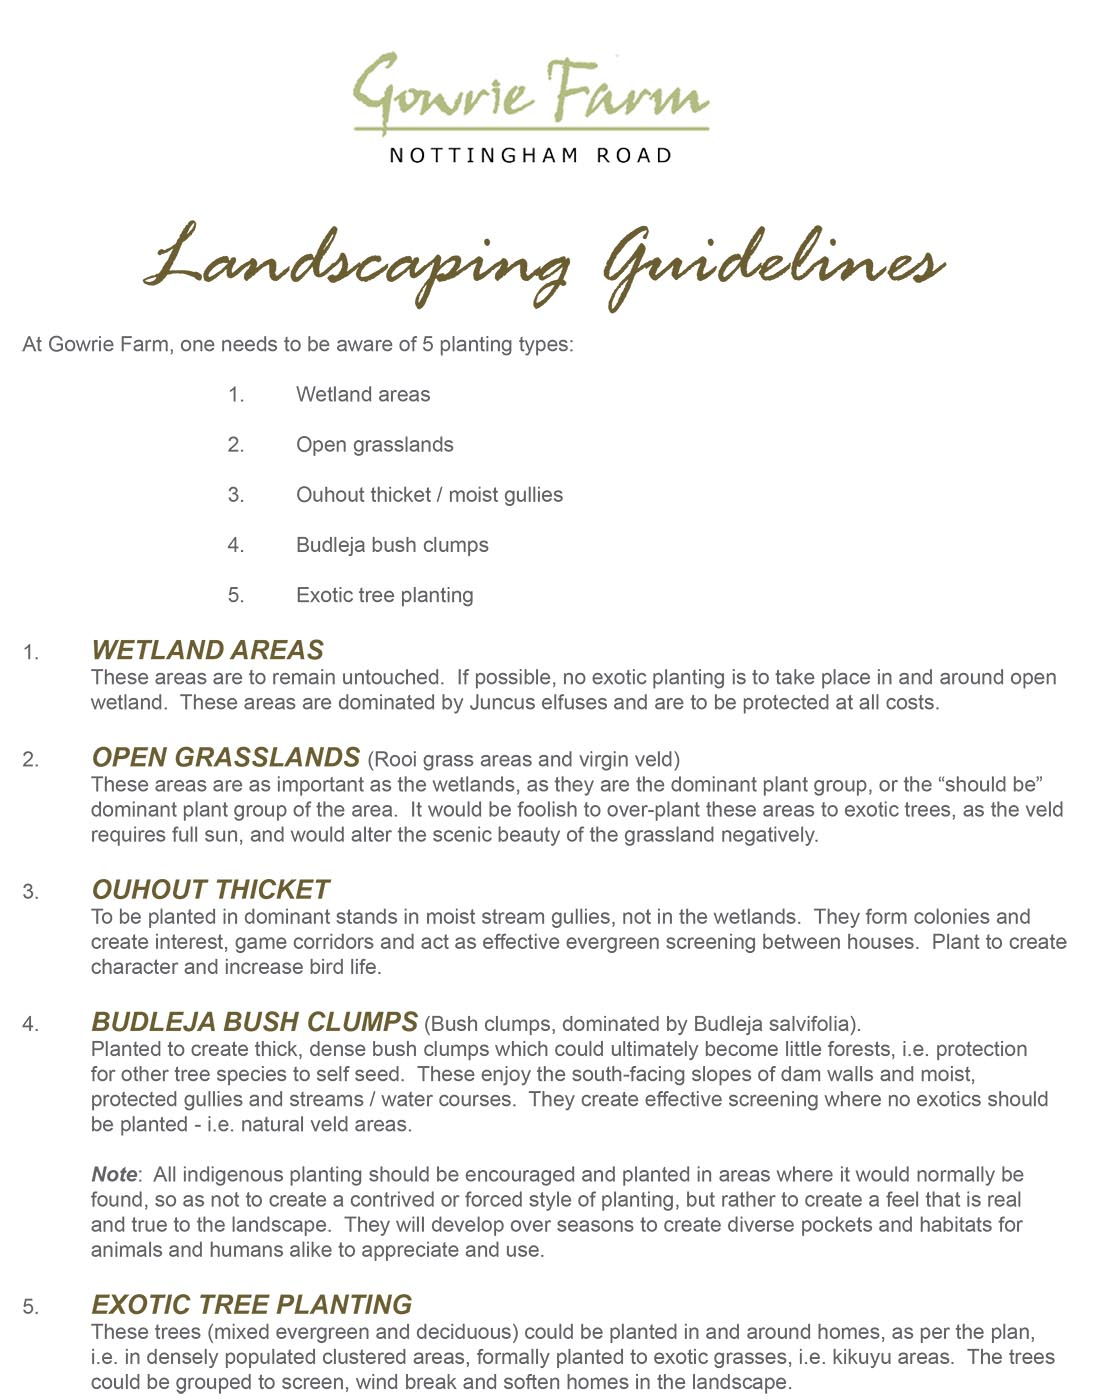 landscaping-guidelines-gowrie-farm